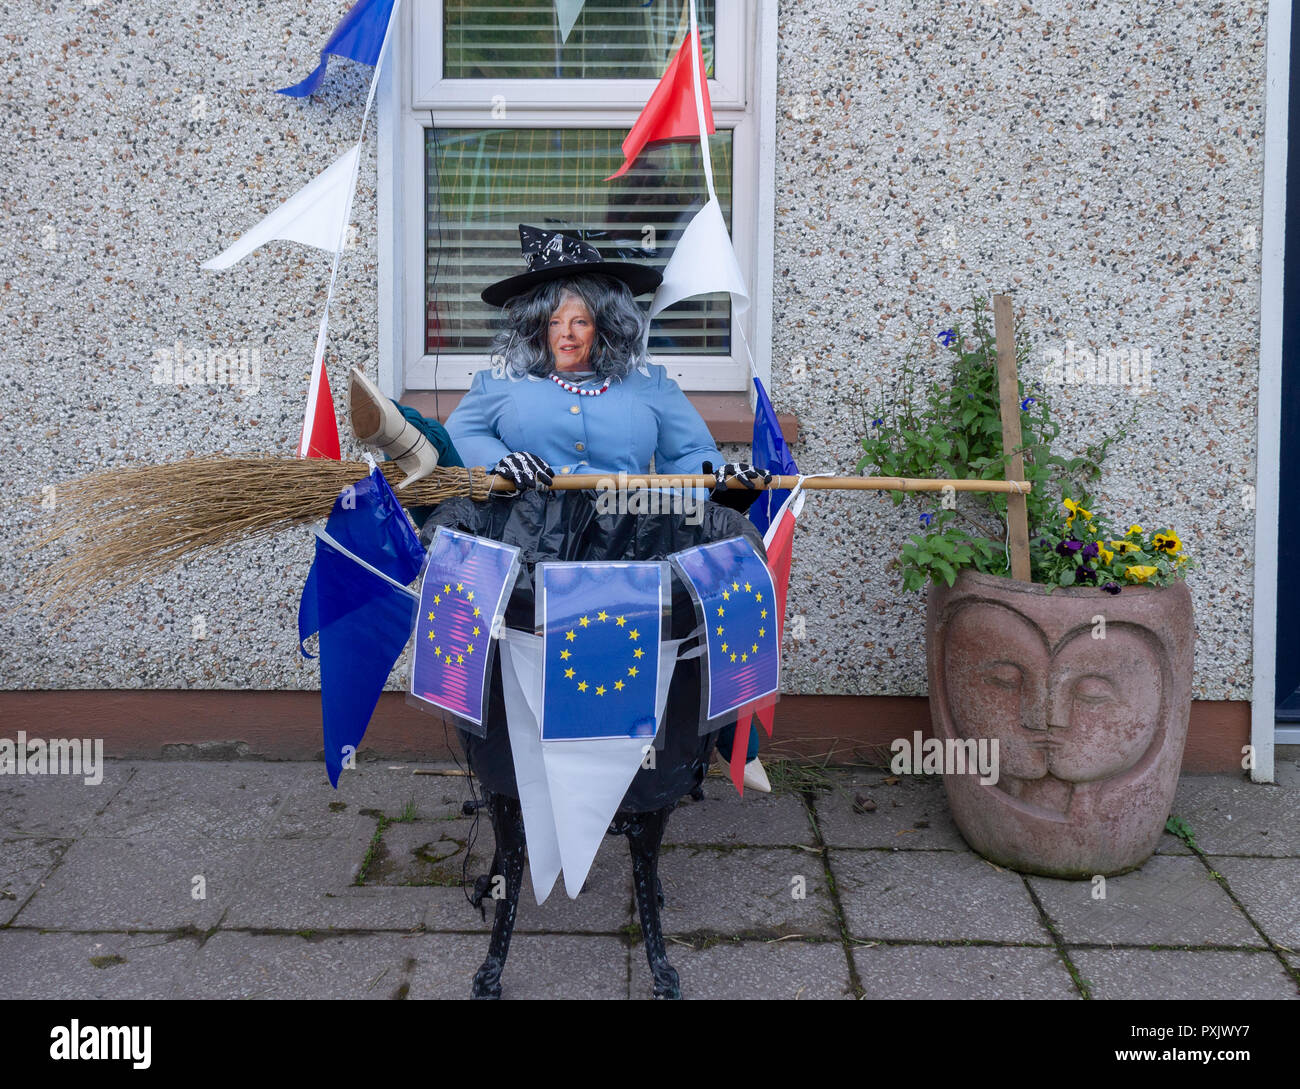 Theresa May scarecrow surrounded by european union flags depicted as the wicked witch of Brexit in a front garden as part of a scarecrow competition for Halloween - Stock Image